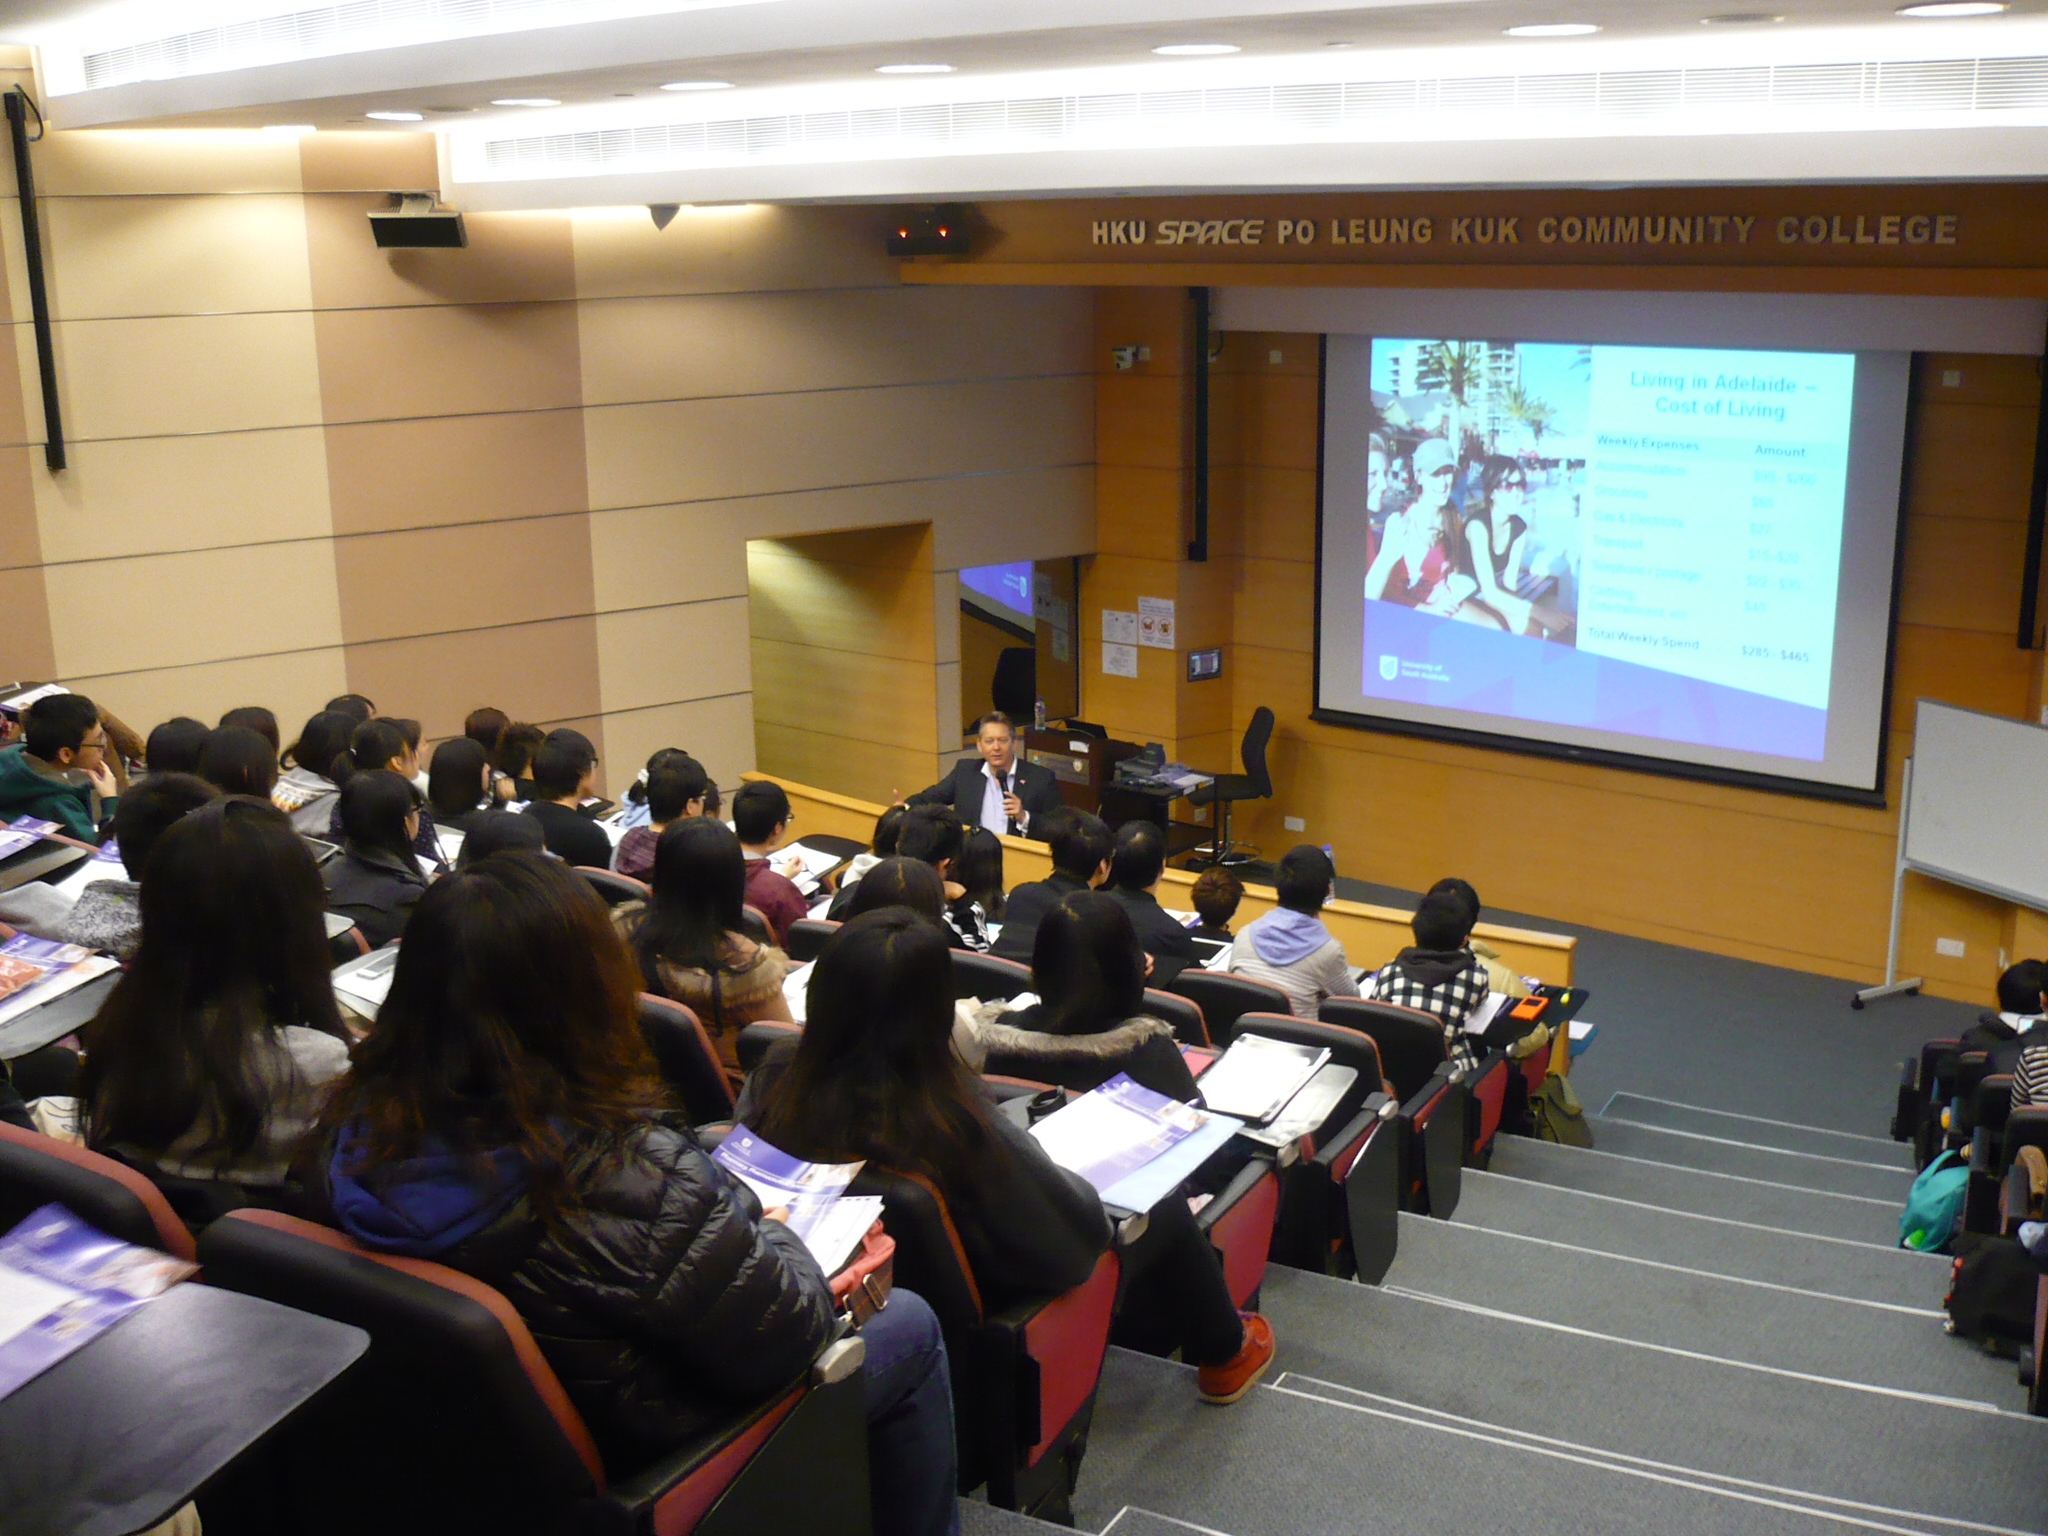 Programme Talk from University of South Australia - Photo - 11